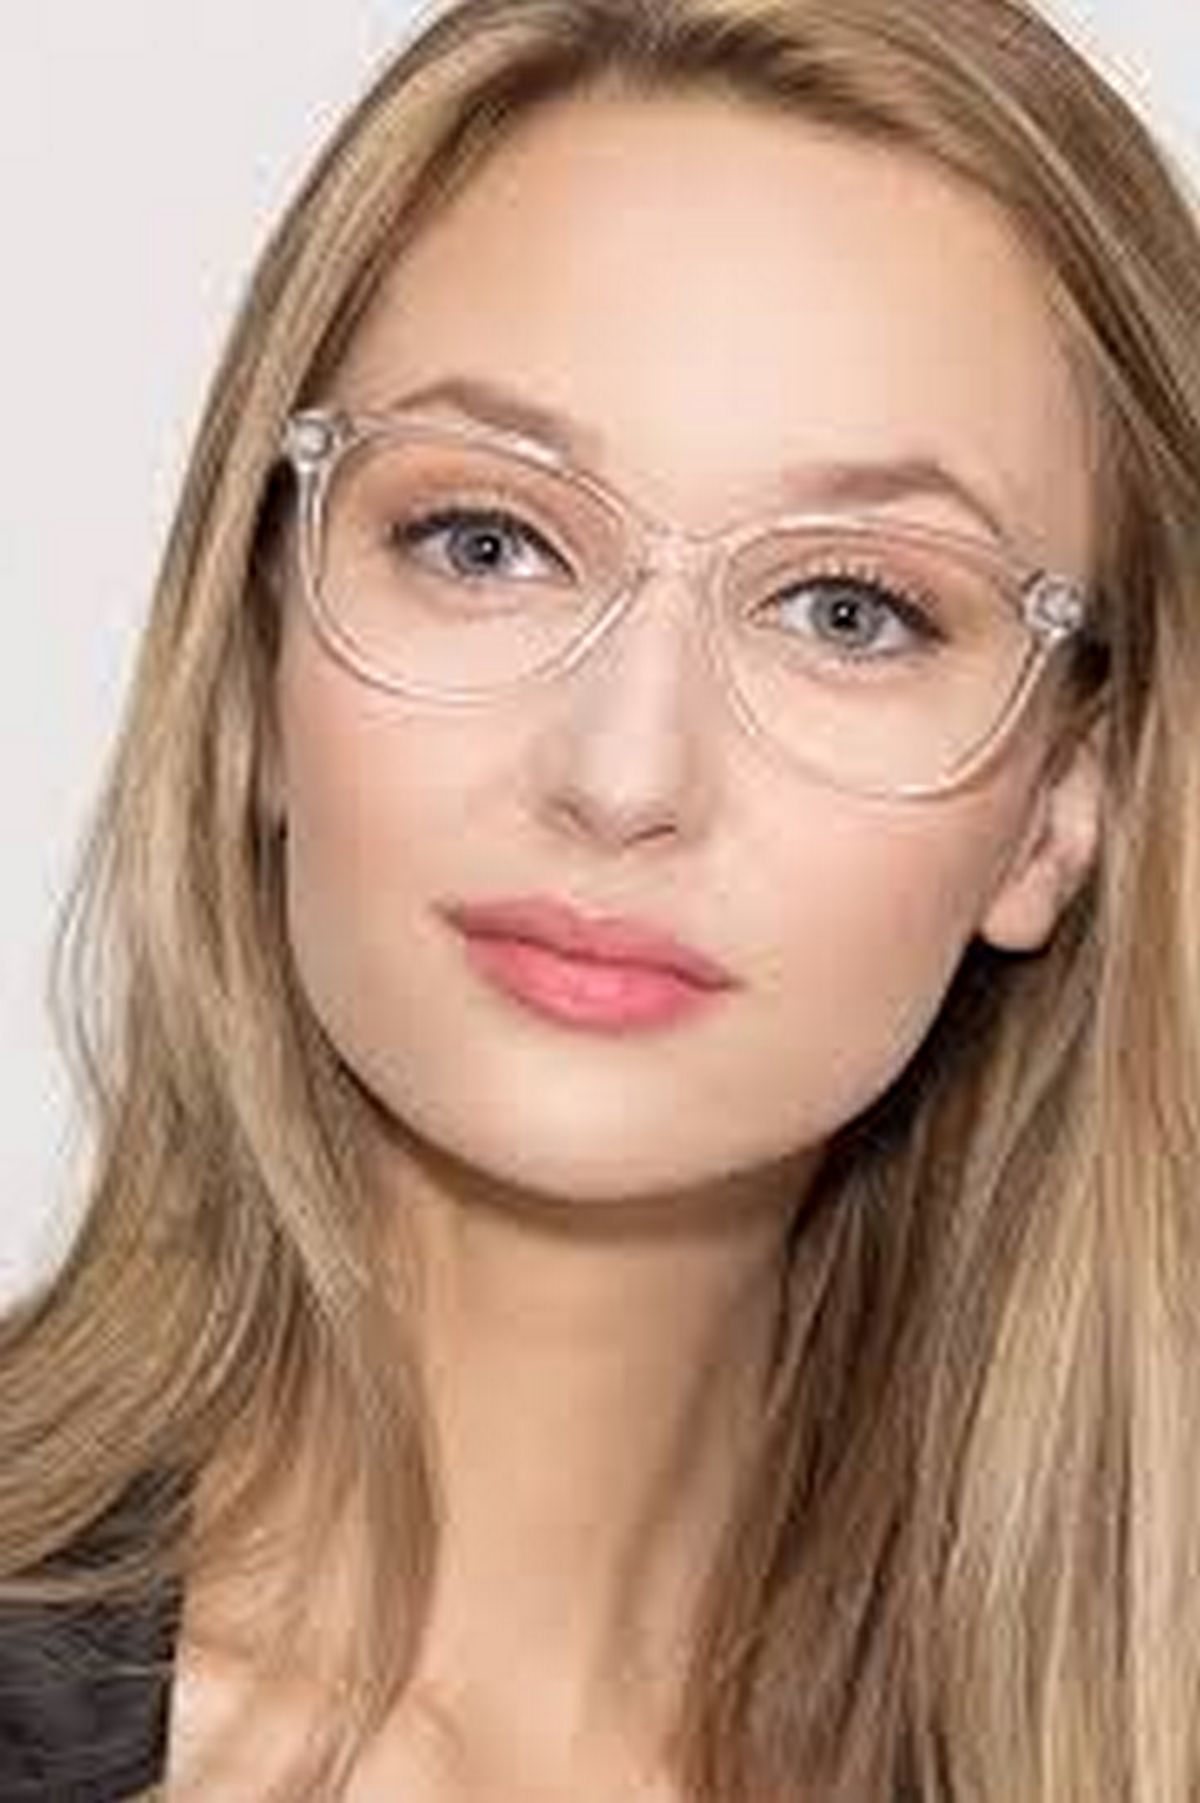 711660af8 Clear Glasses Frame For Women's Fashion Ideas #Transparent #Eyeglass ...